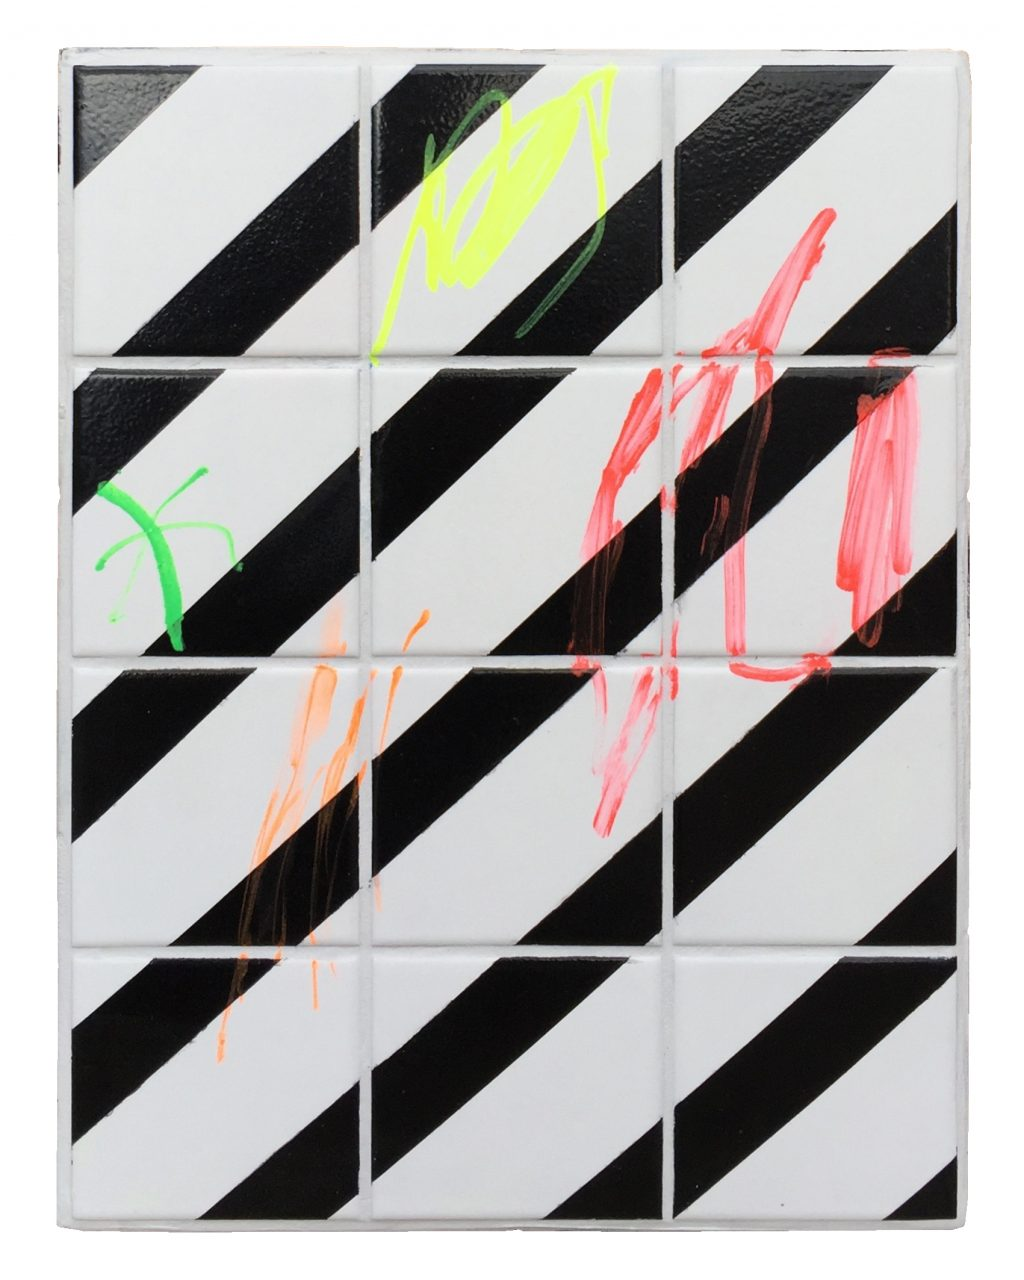 untitled, 40 x 30 x 3 cm, marker, gloss paint & tiles on wooden board, 2017